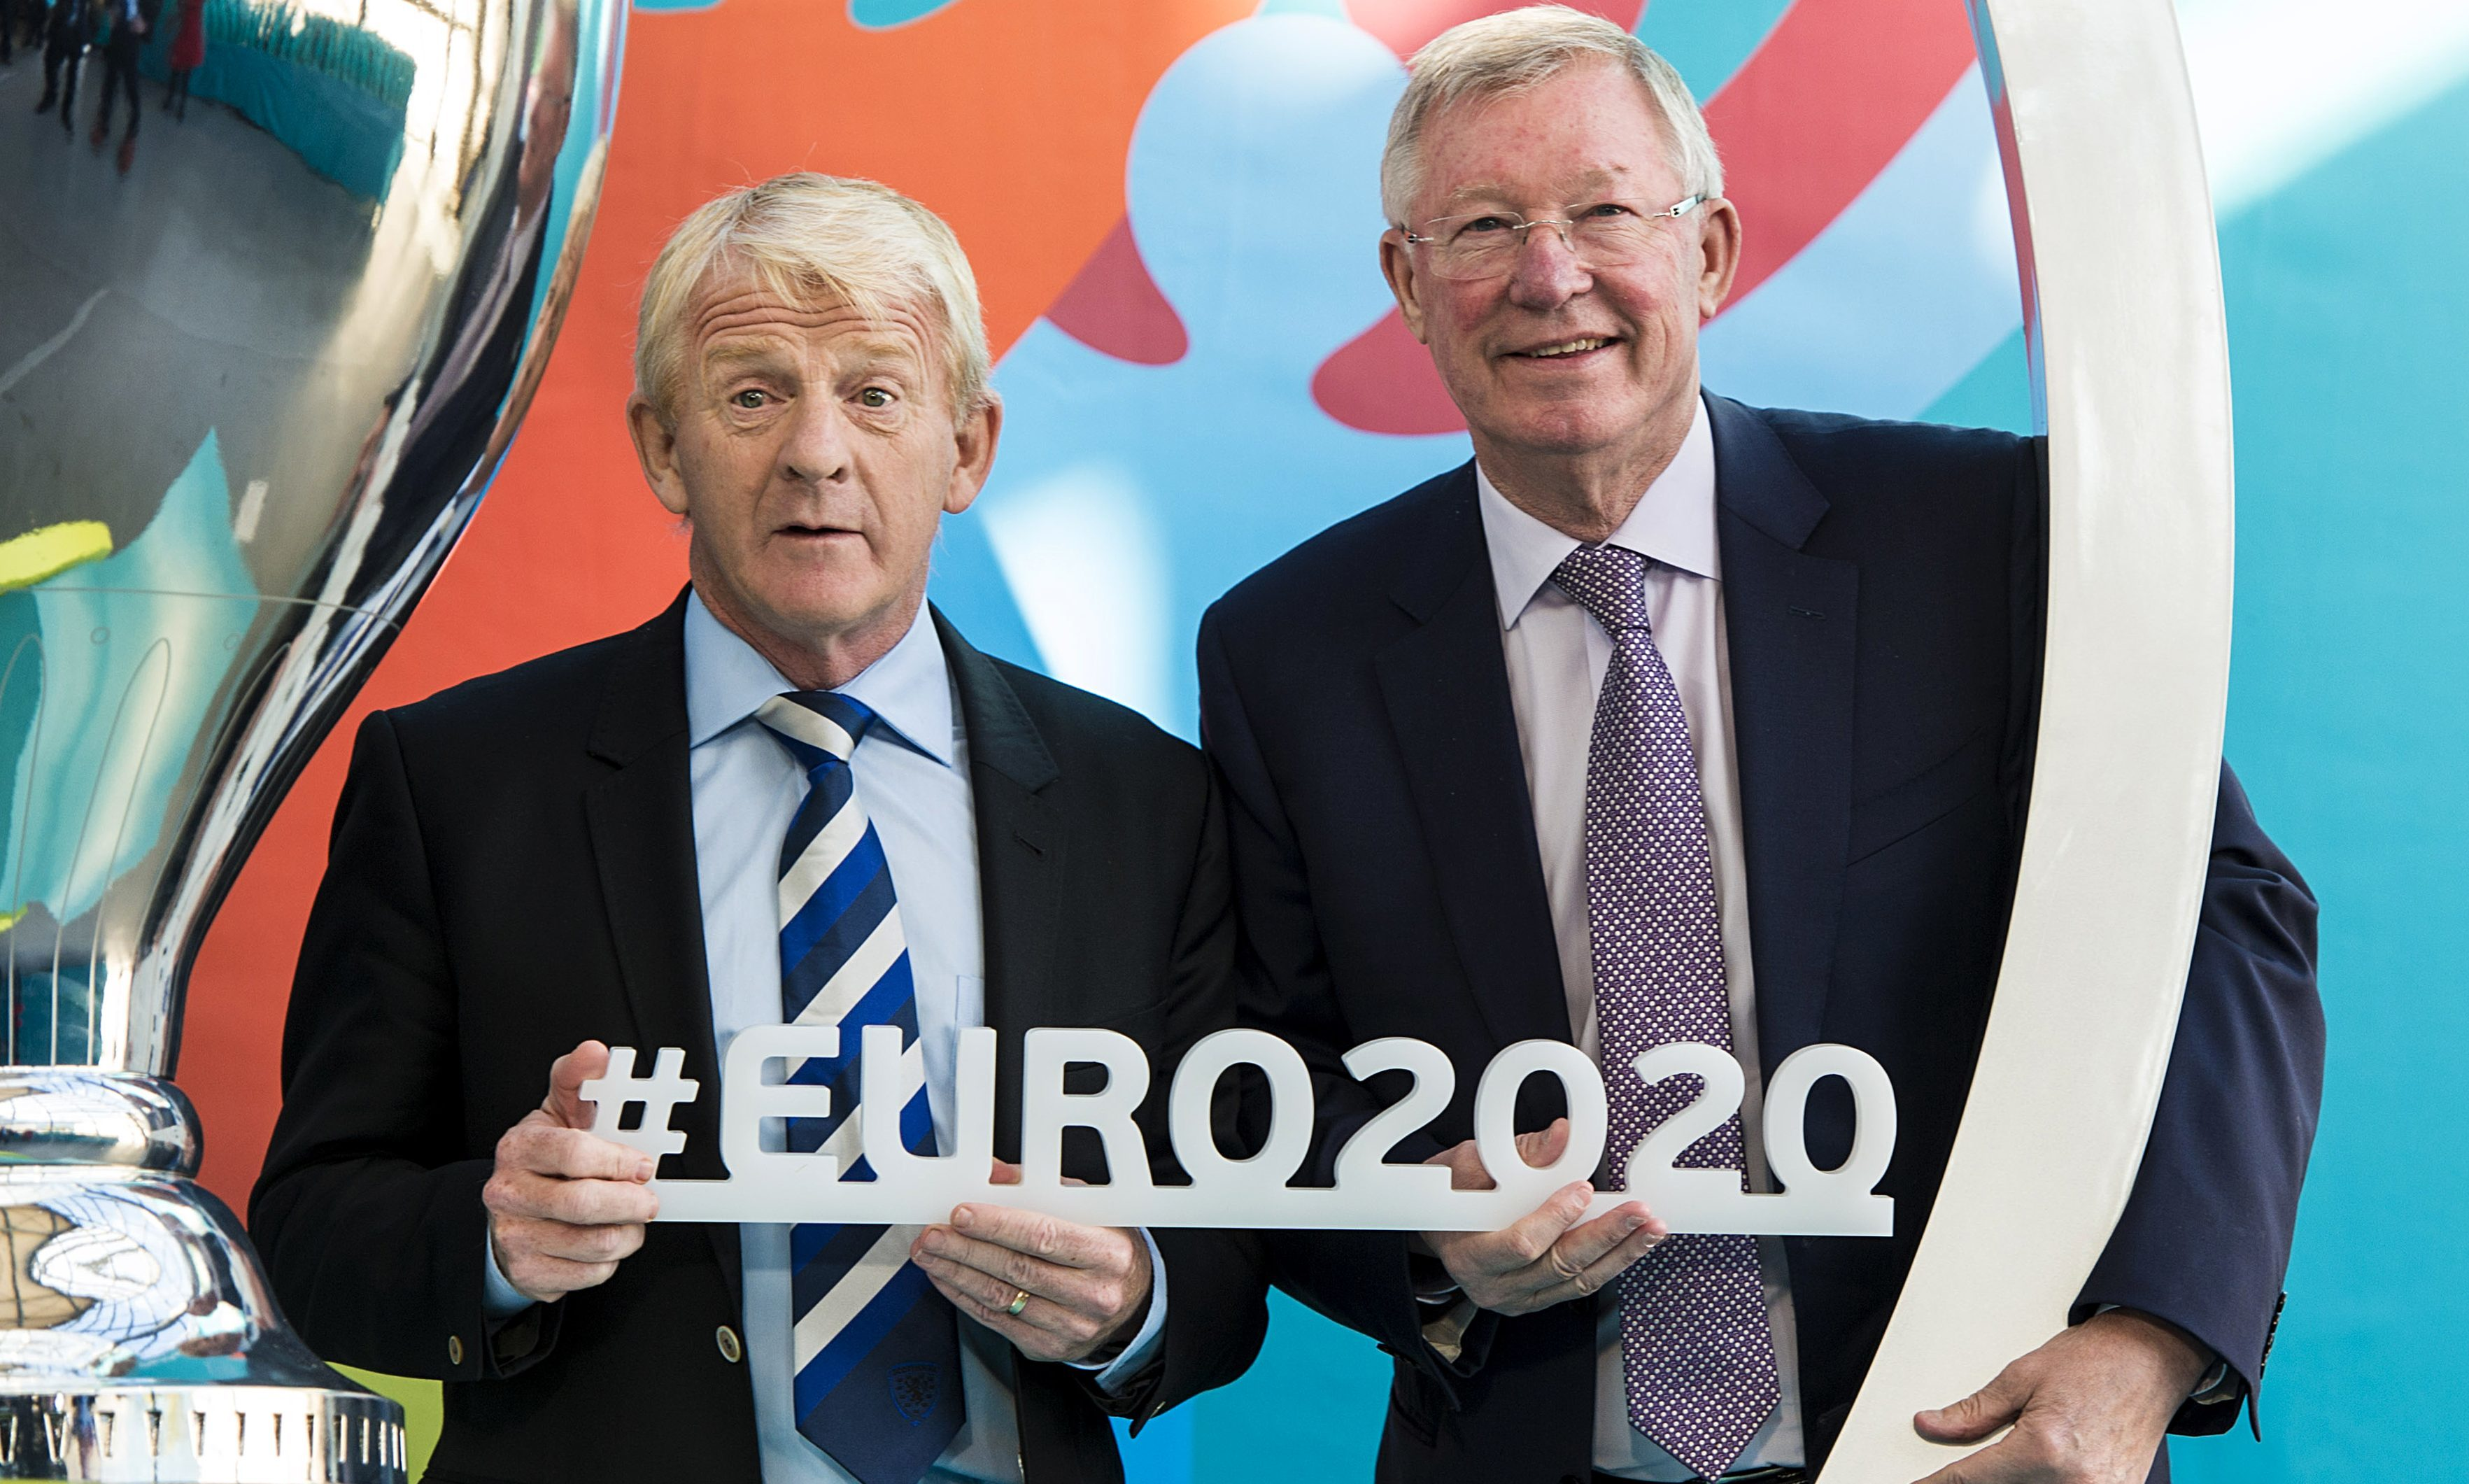 Scotland manager Gordon Strachan (L) and Sir Alex Ferguson at the Glasgow 2020 logo launch.